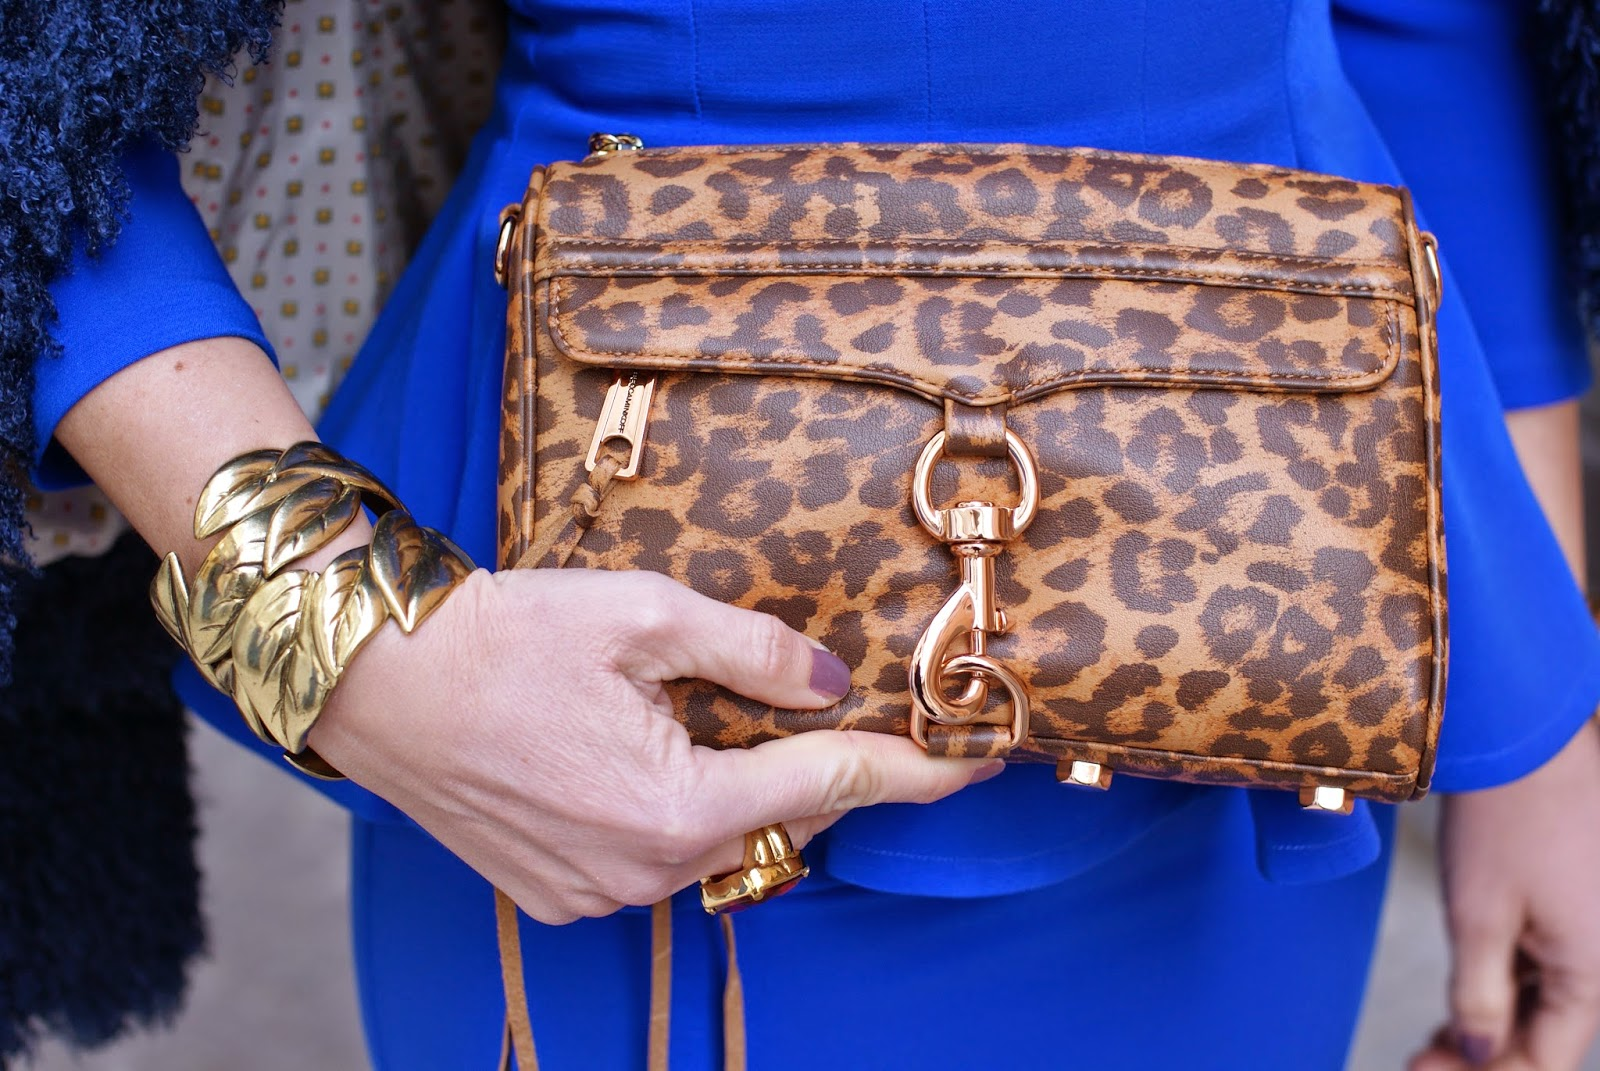 Chabel tenderly nail polish, Rebecca Minkoff mini MAC clutch in leopard, Fashion and Cookies fashion blog, fashion blogger